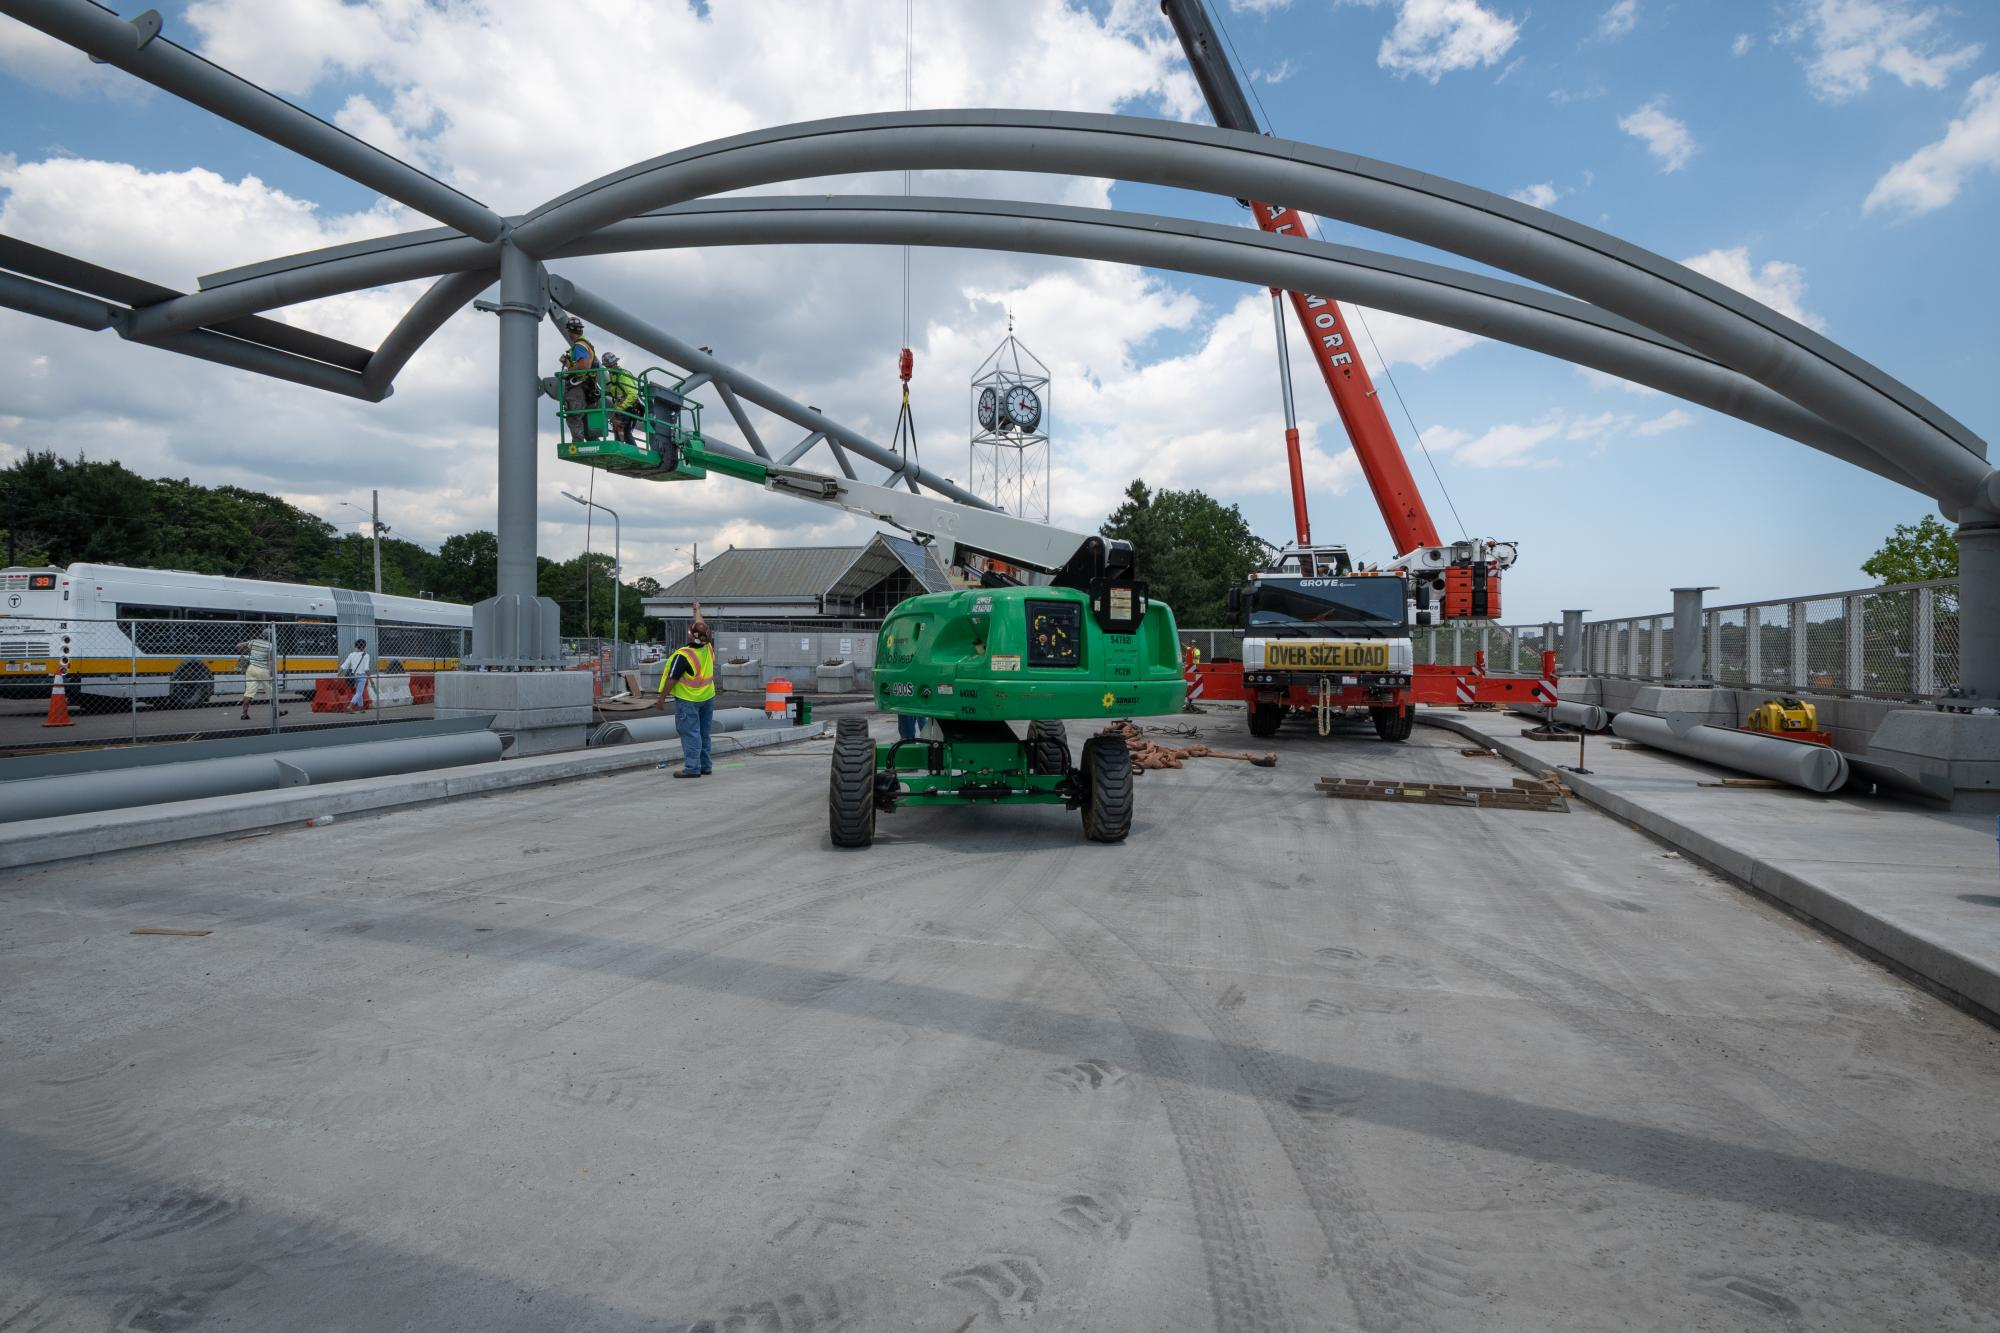 Construction on upper busway canopy at Forest Hills (June 21, 2018)